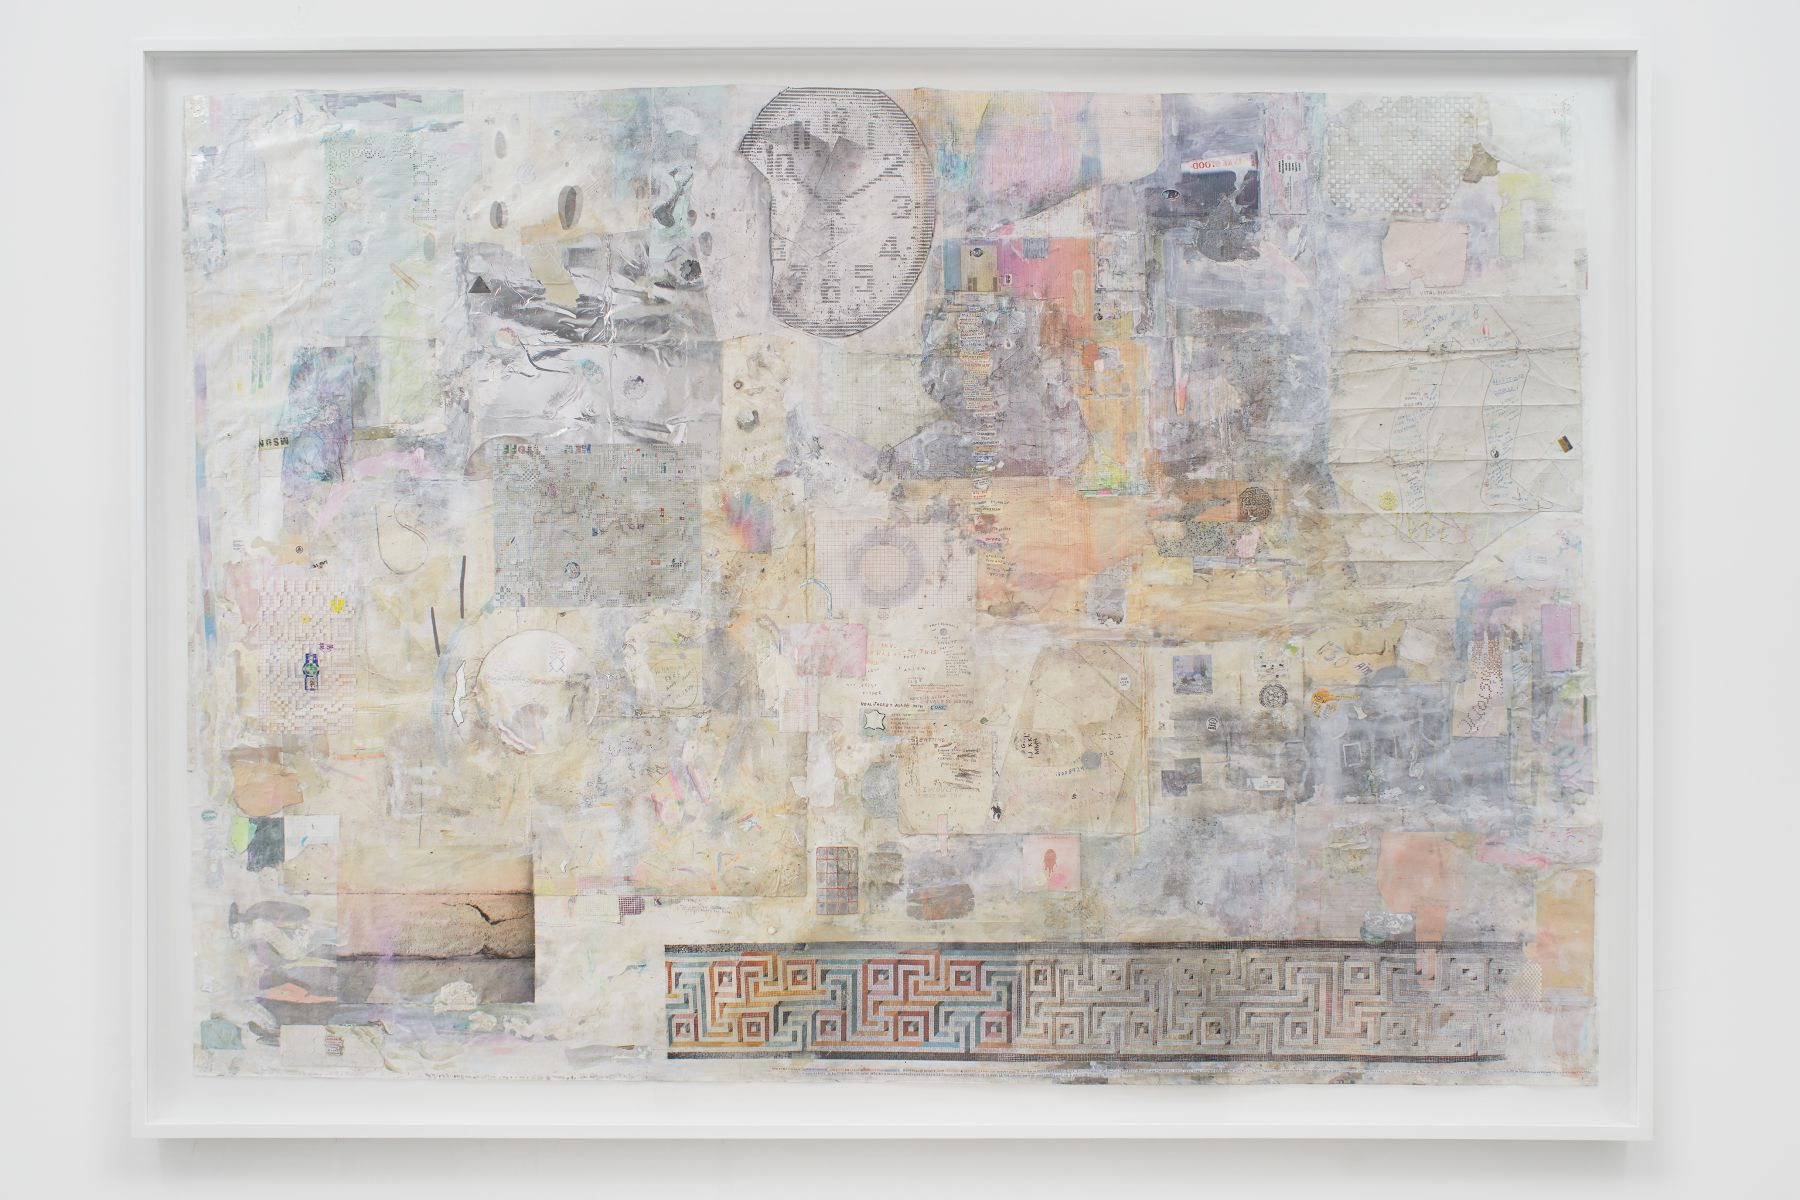 Collage of distressed paper with pictorial elements